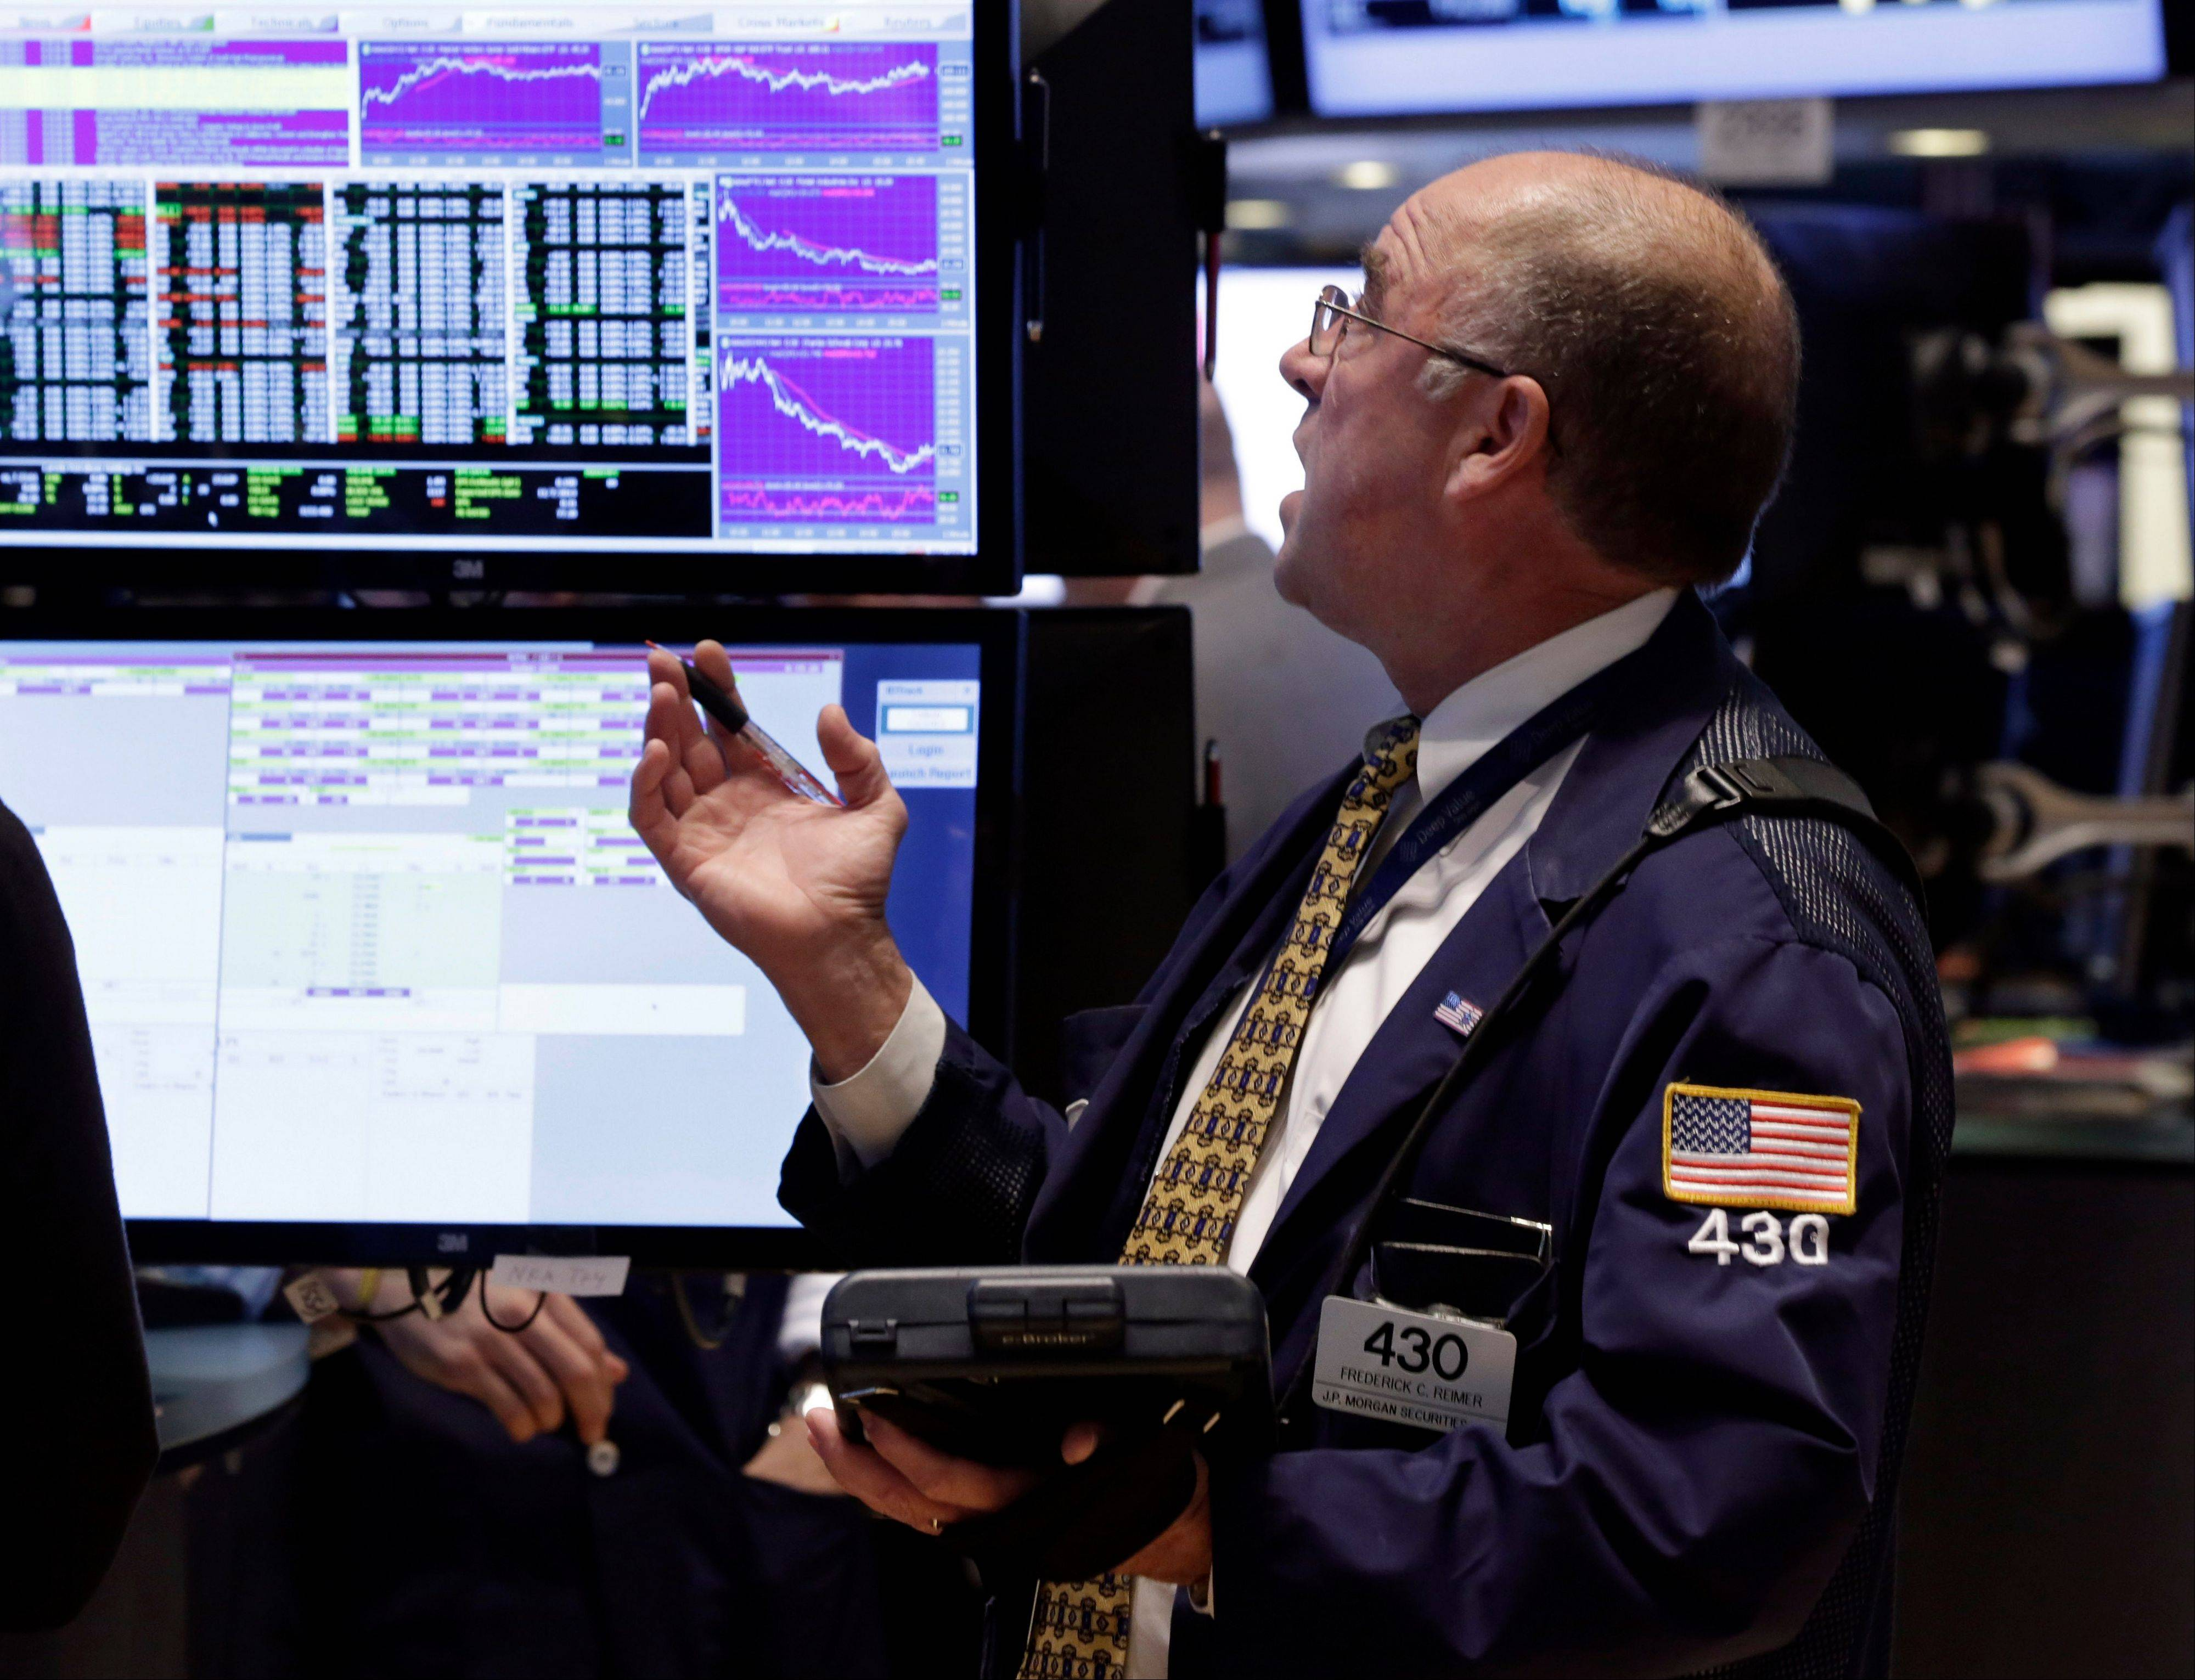 Trader Frederick Reimer works on the floor of the New York Stock Exchange.